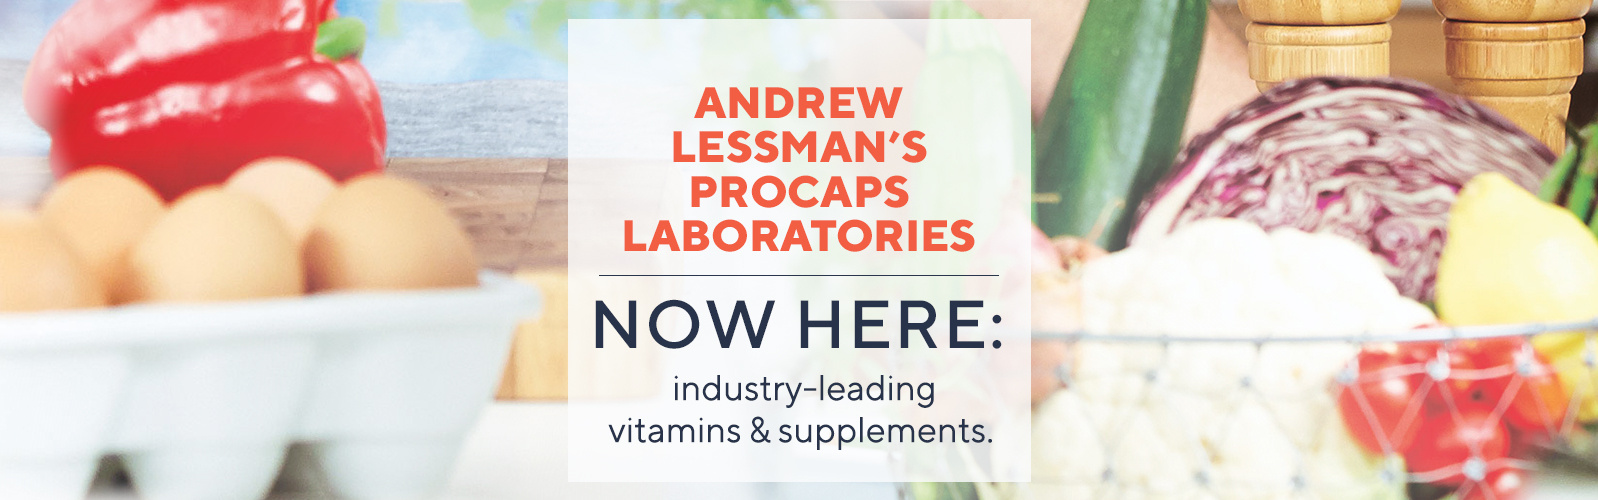 Andrew Lessman ProCaps Laboratories  Now here: industry-leading vitamins & supplements.